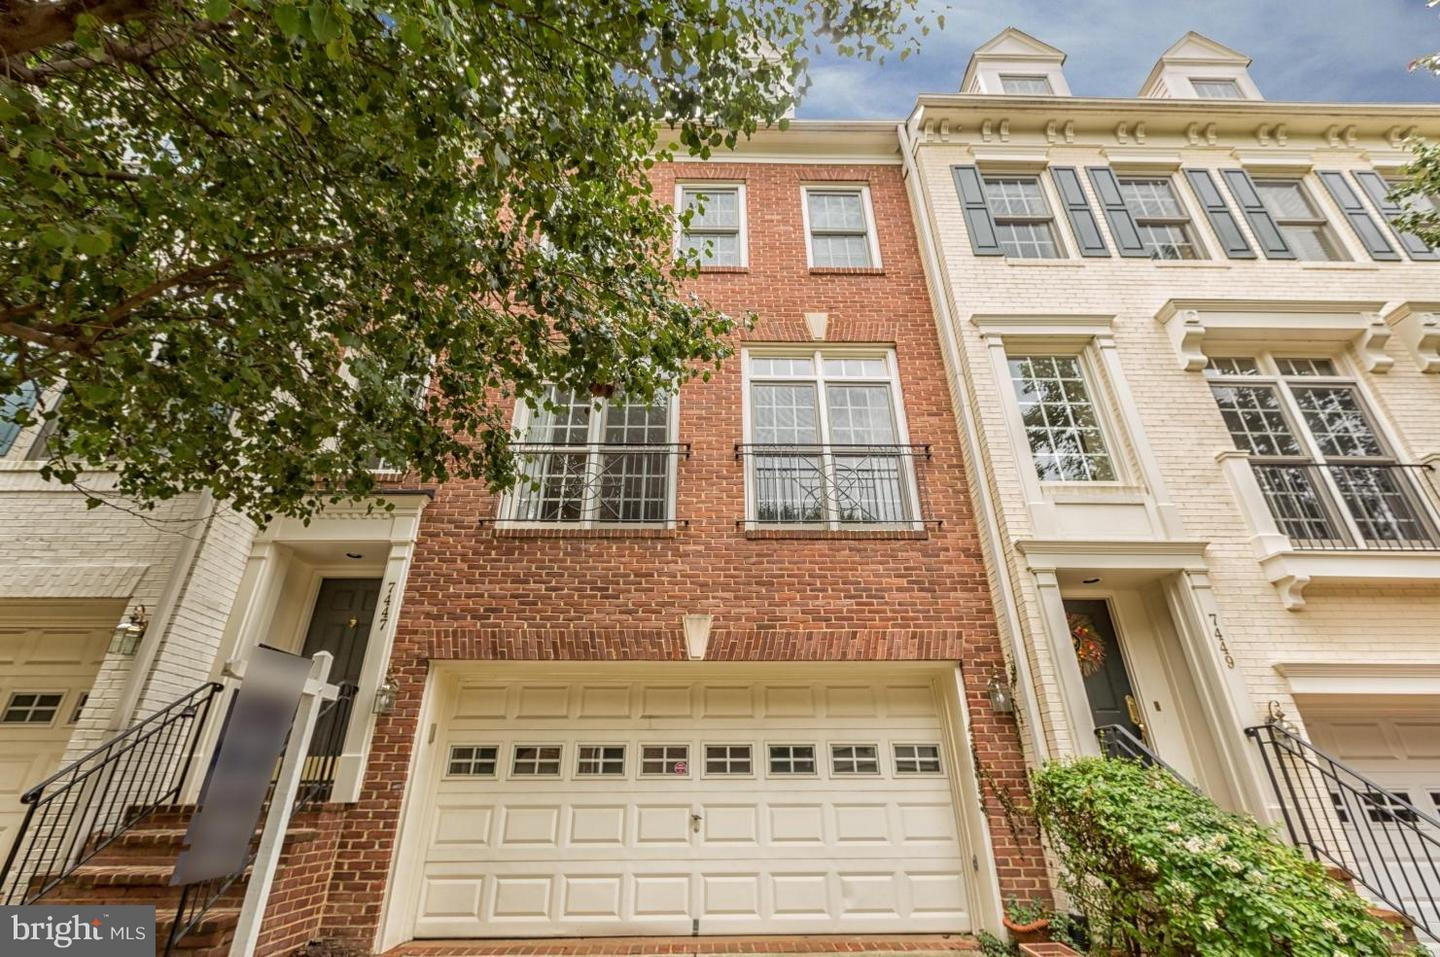 Local Real Estate: Homes for Sale — East Side, VA — Coldwell Banker